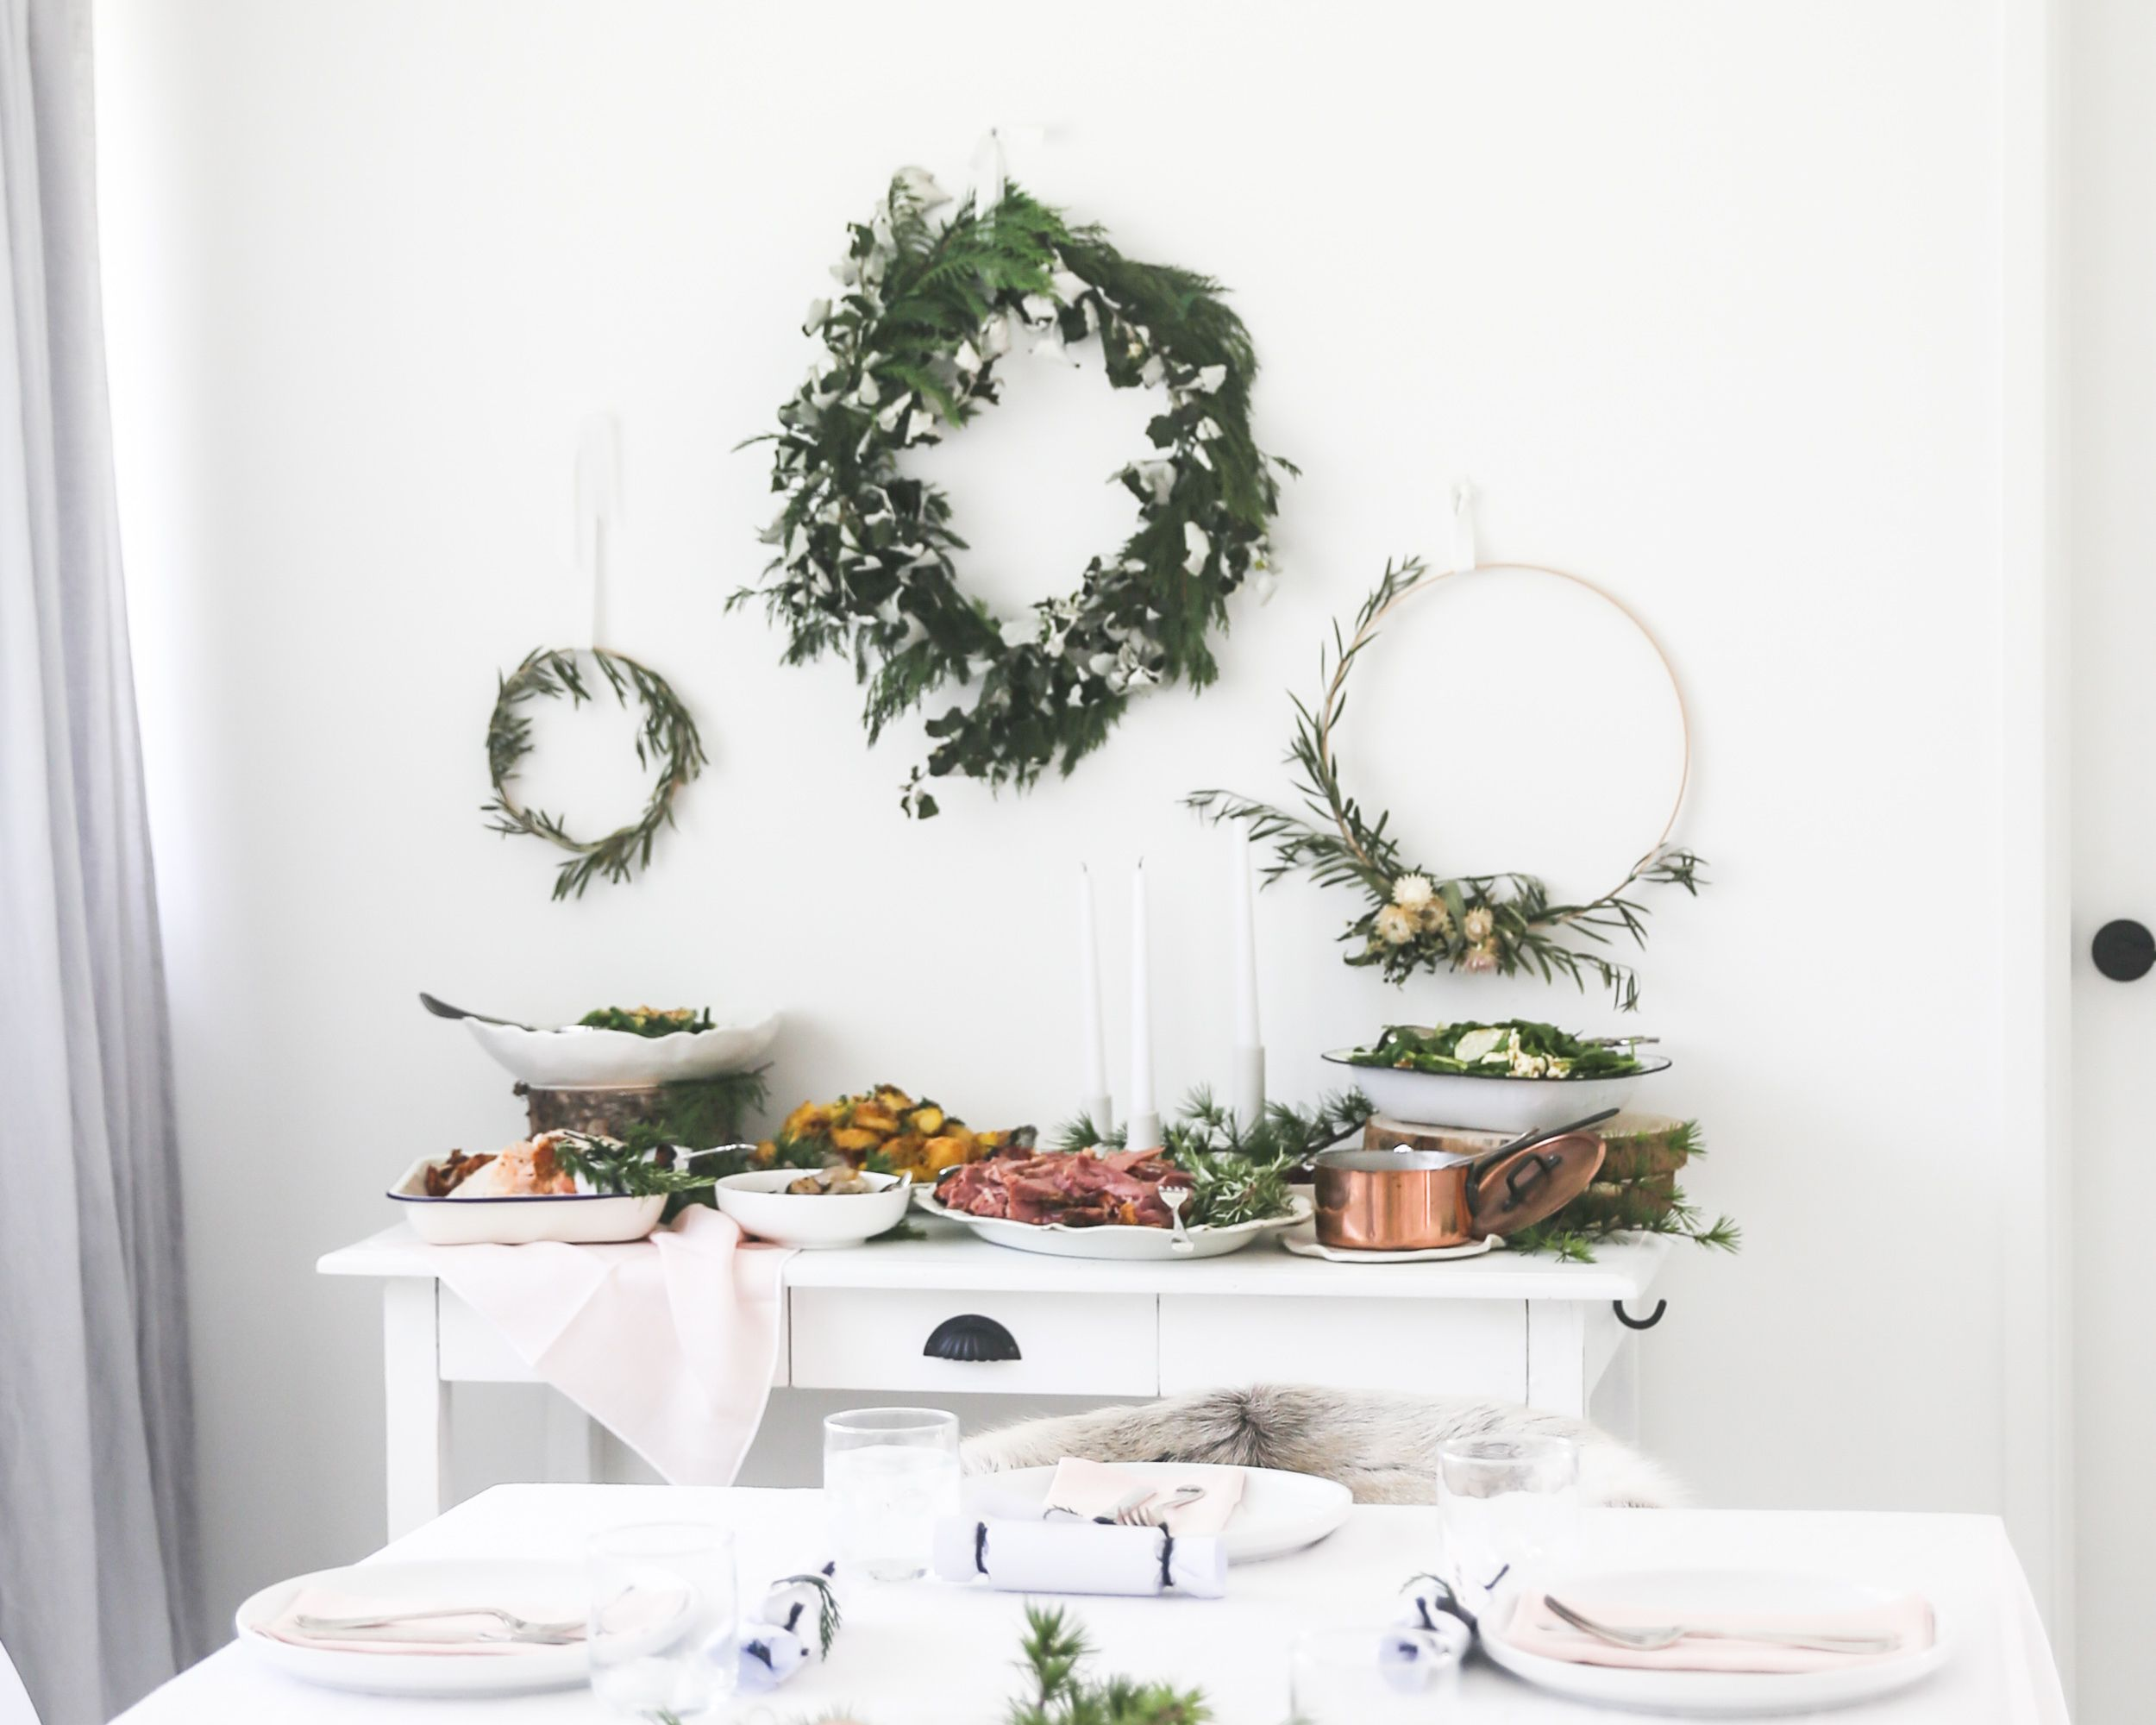 Christmas dinner on a sideboard in a dining room